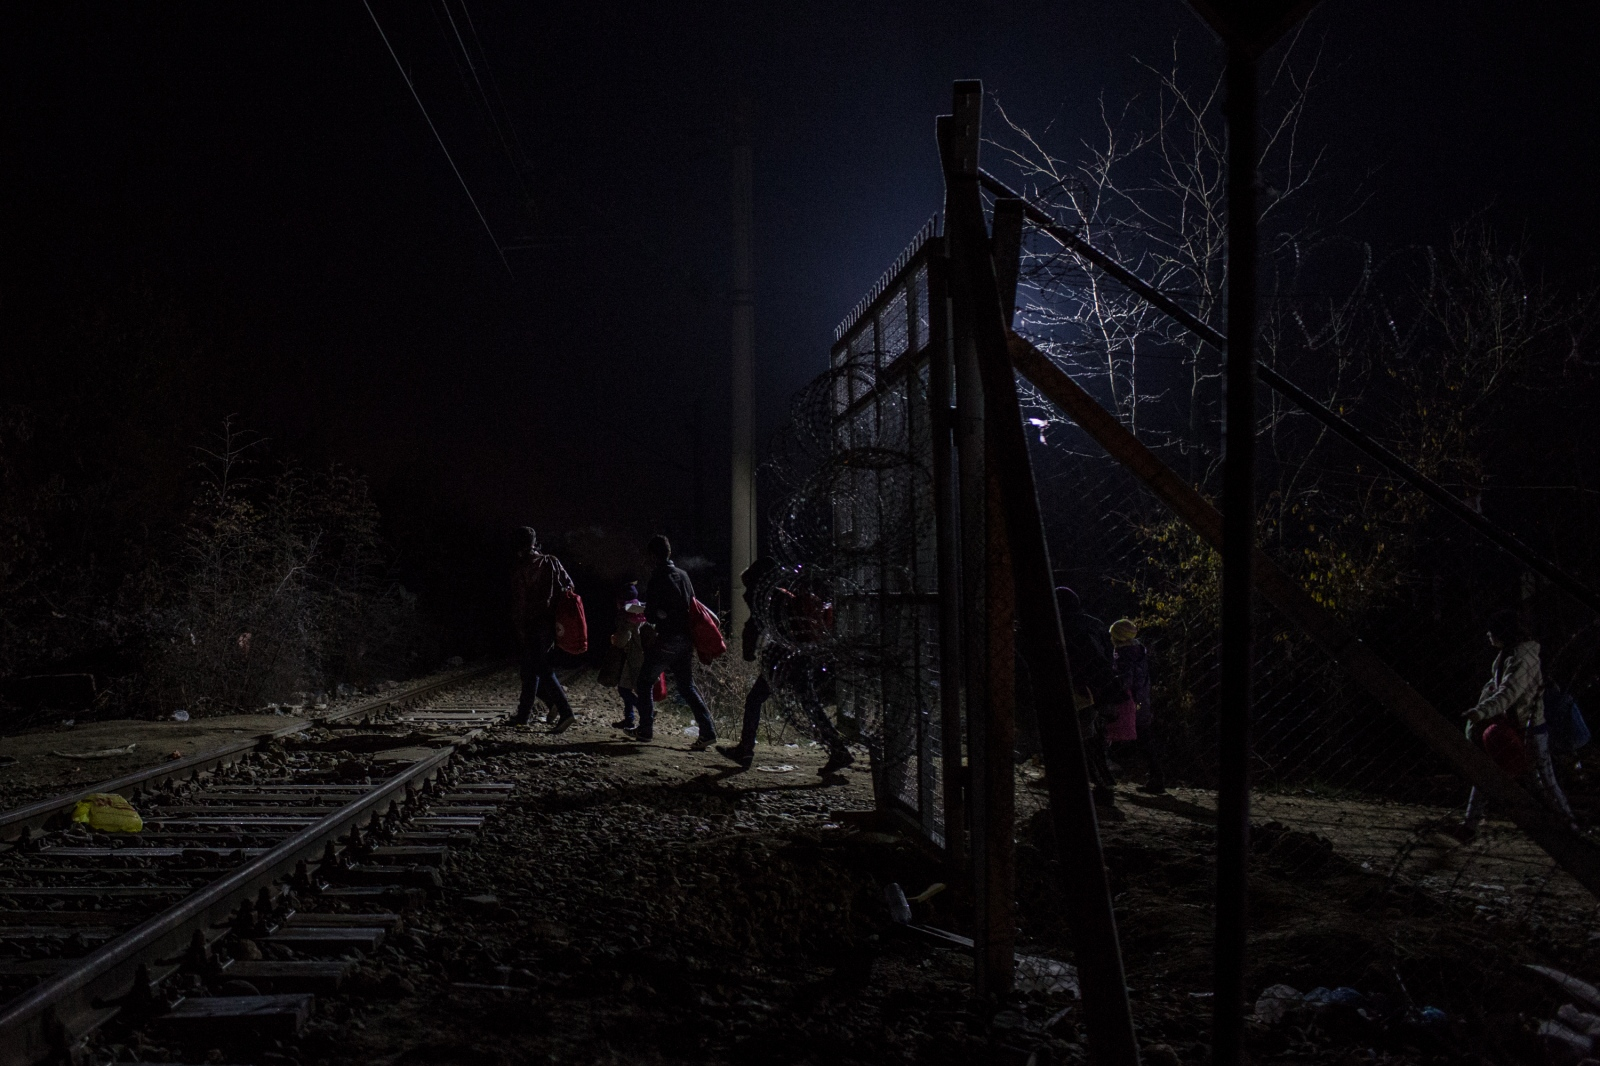 Refugees are seen walking on the railway tracks on the Macedonian side shortly after crossing the border between Greece and Macedonia on December 20, 2015.